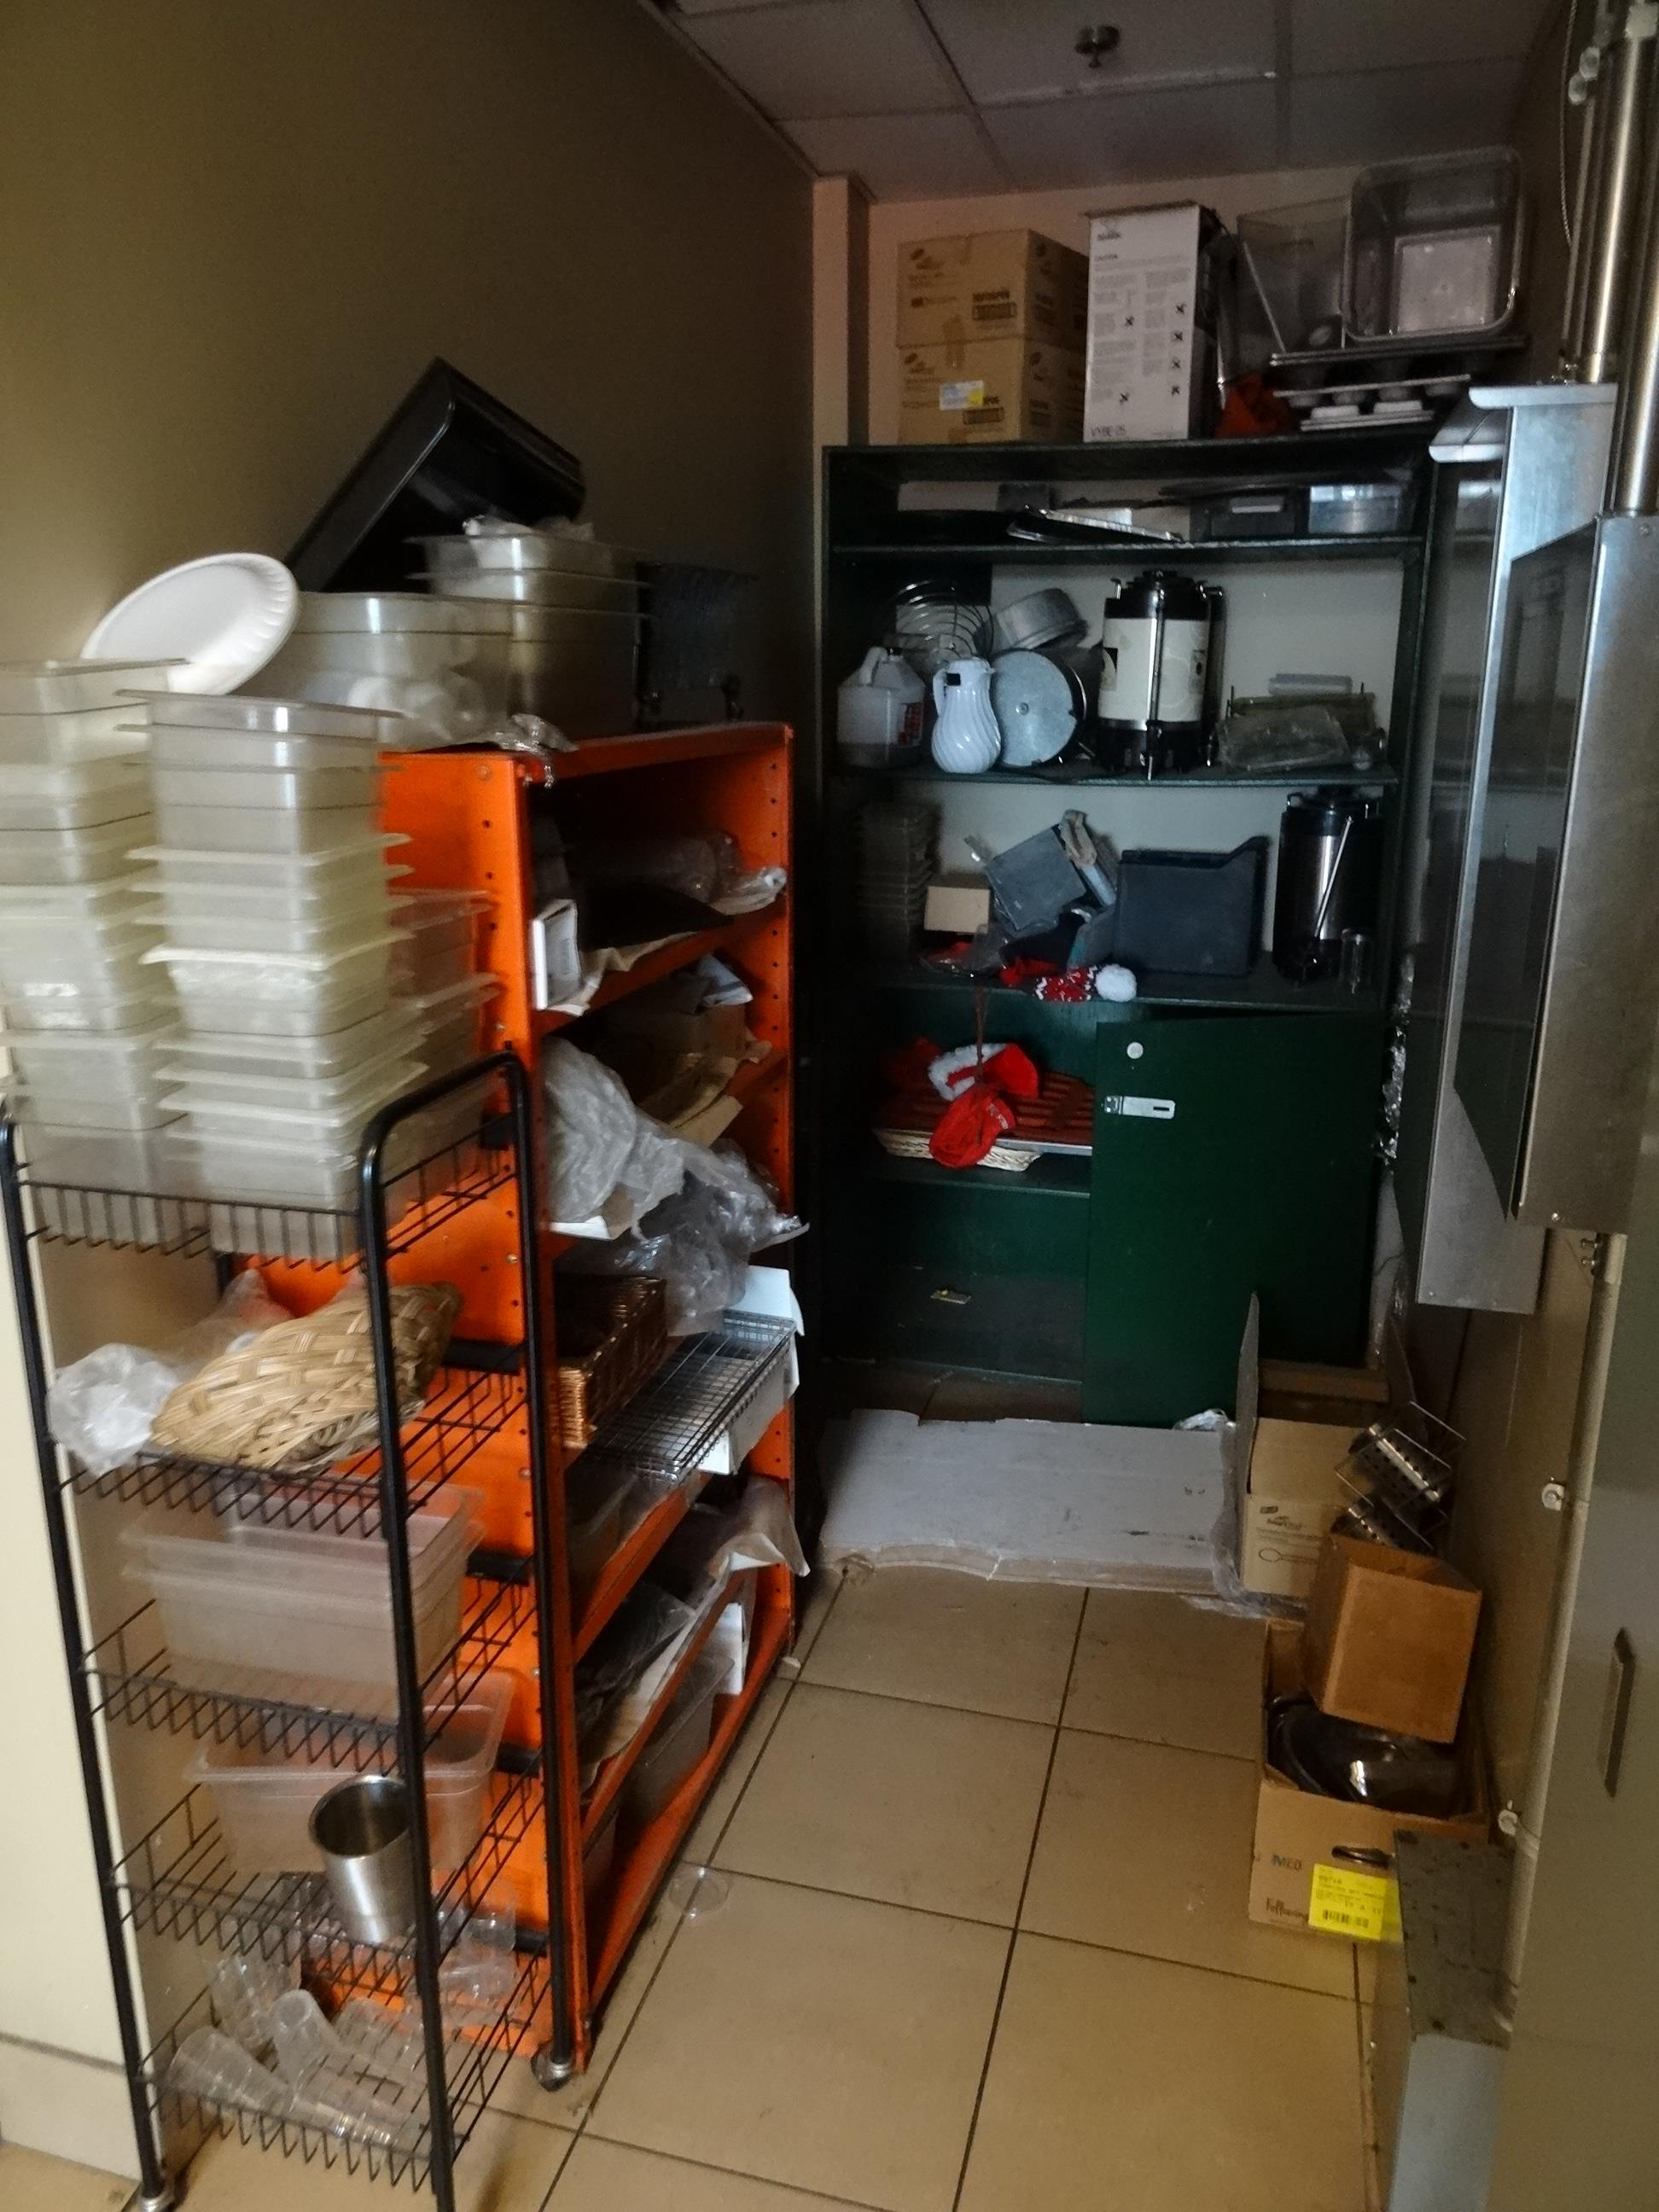 LOT, CONTENTS OF STORAGE ROOM